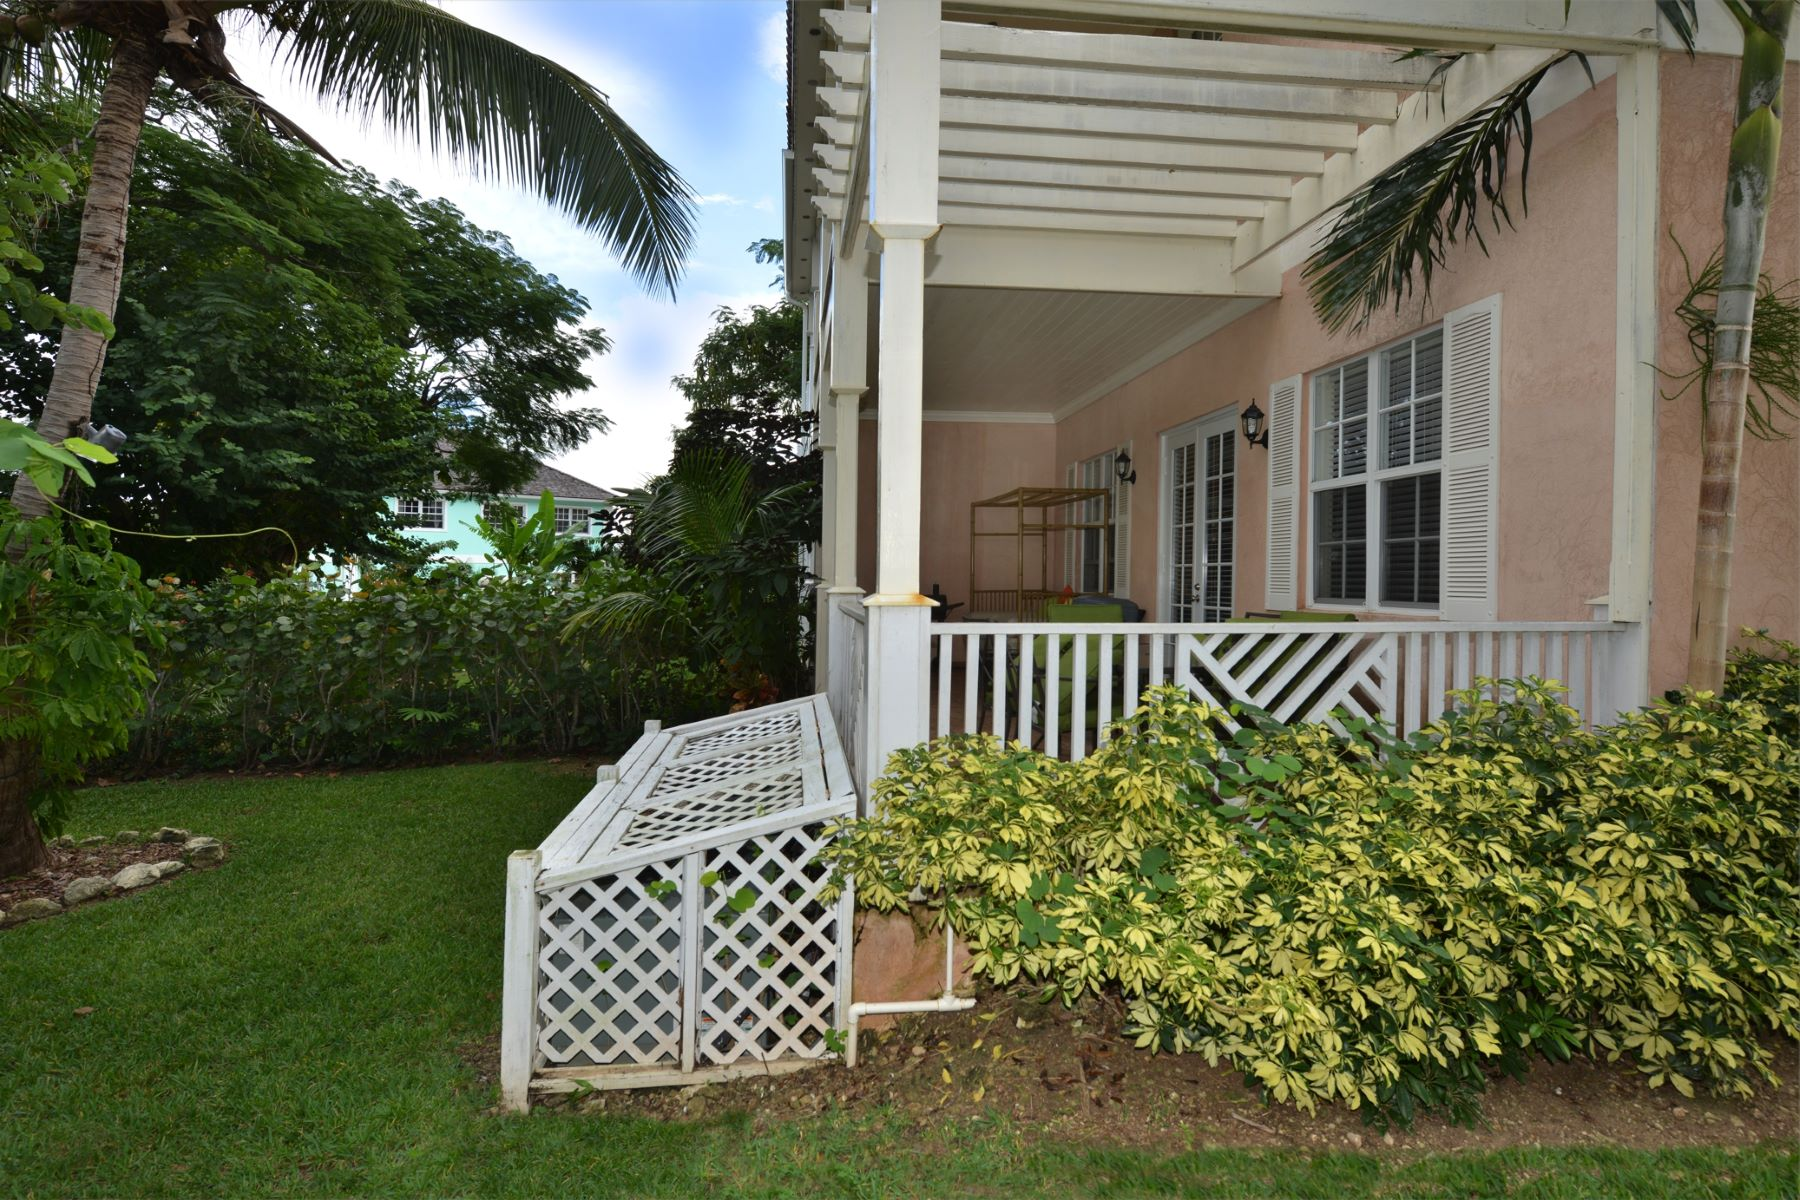 Additional photo for property listing at Balmoral #GR79 Balmoral, Prospect Ridge, Nueva Providencia / Nassau Bahamas